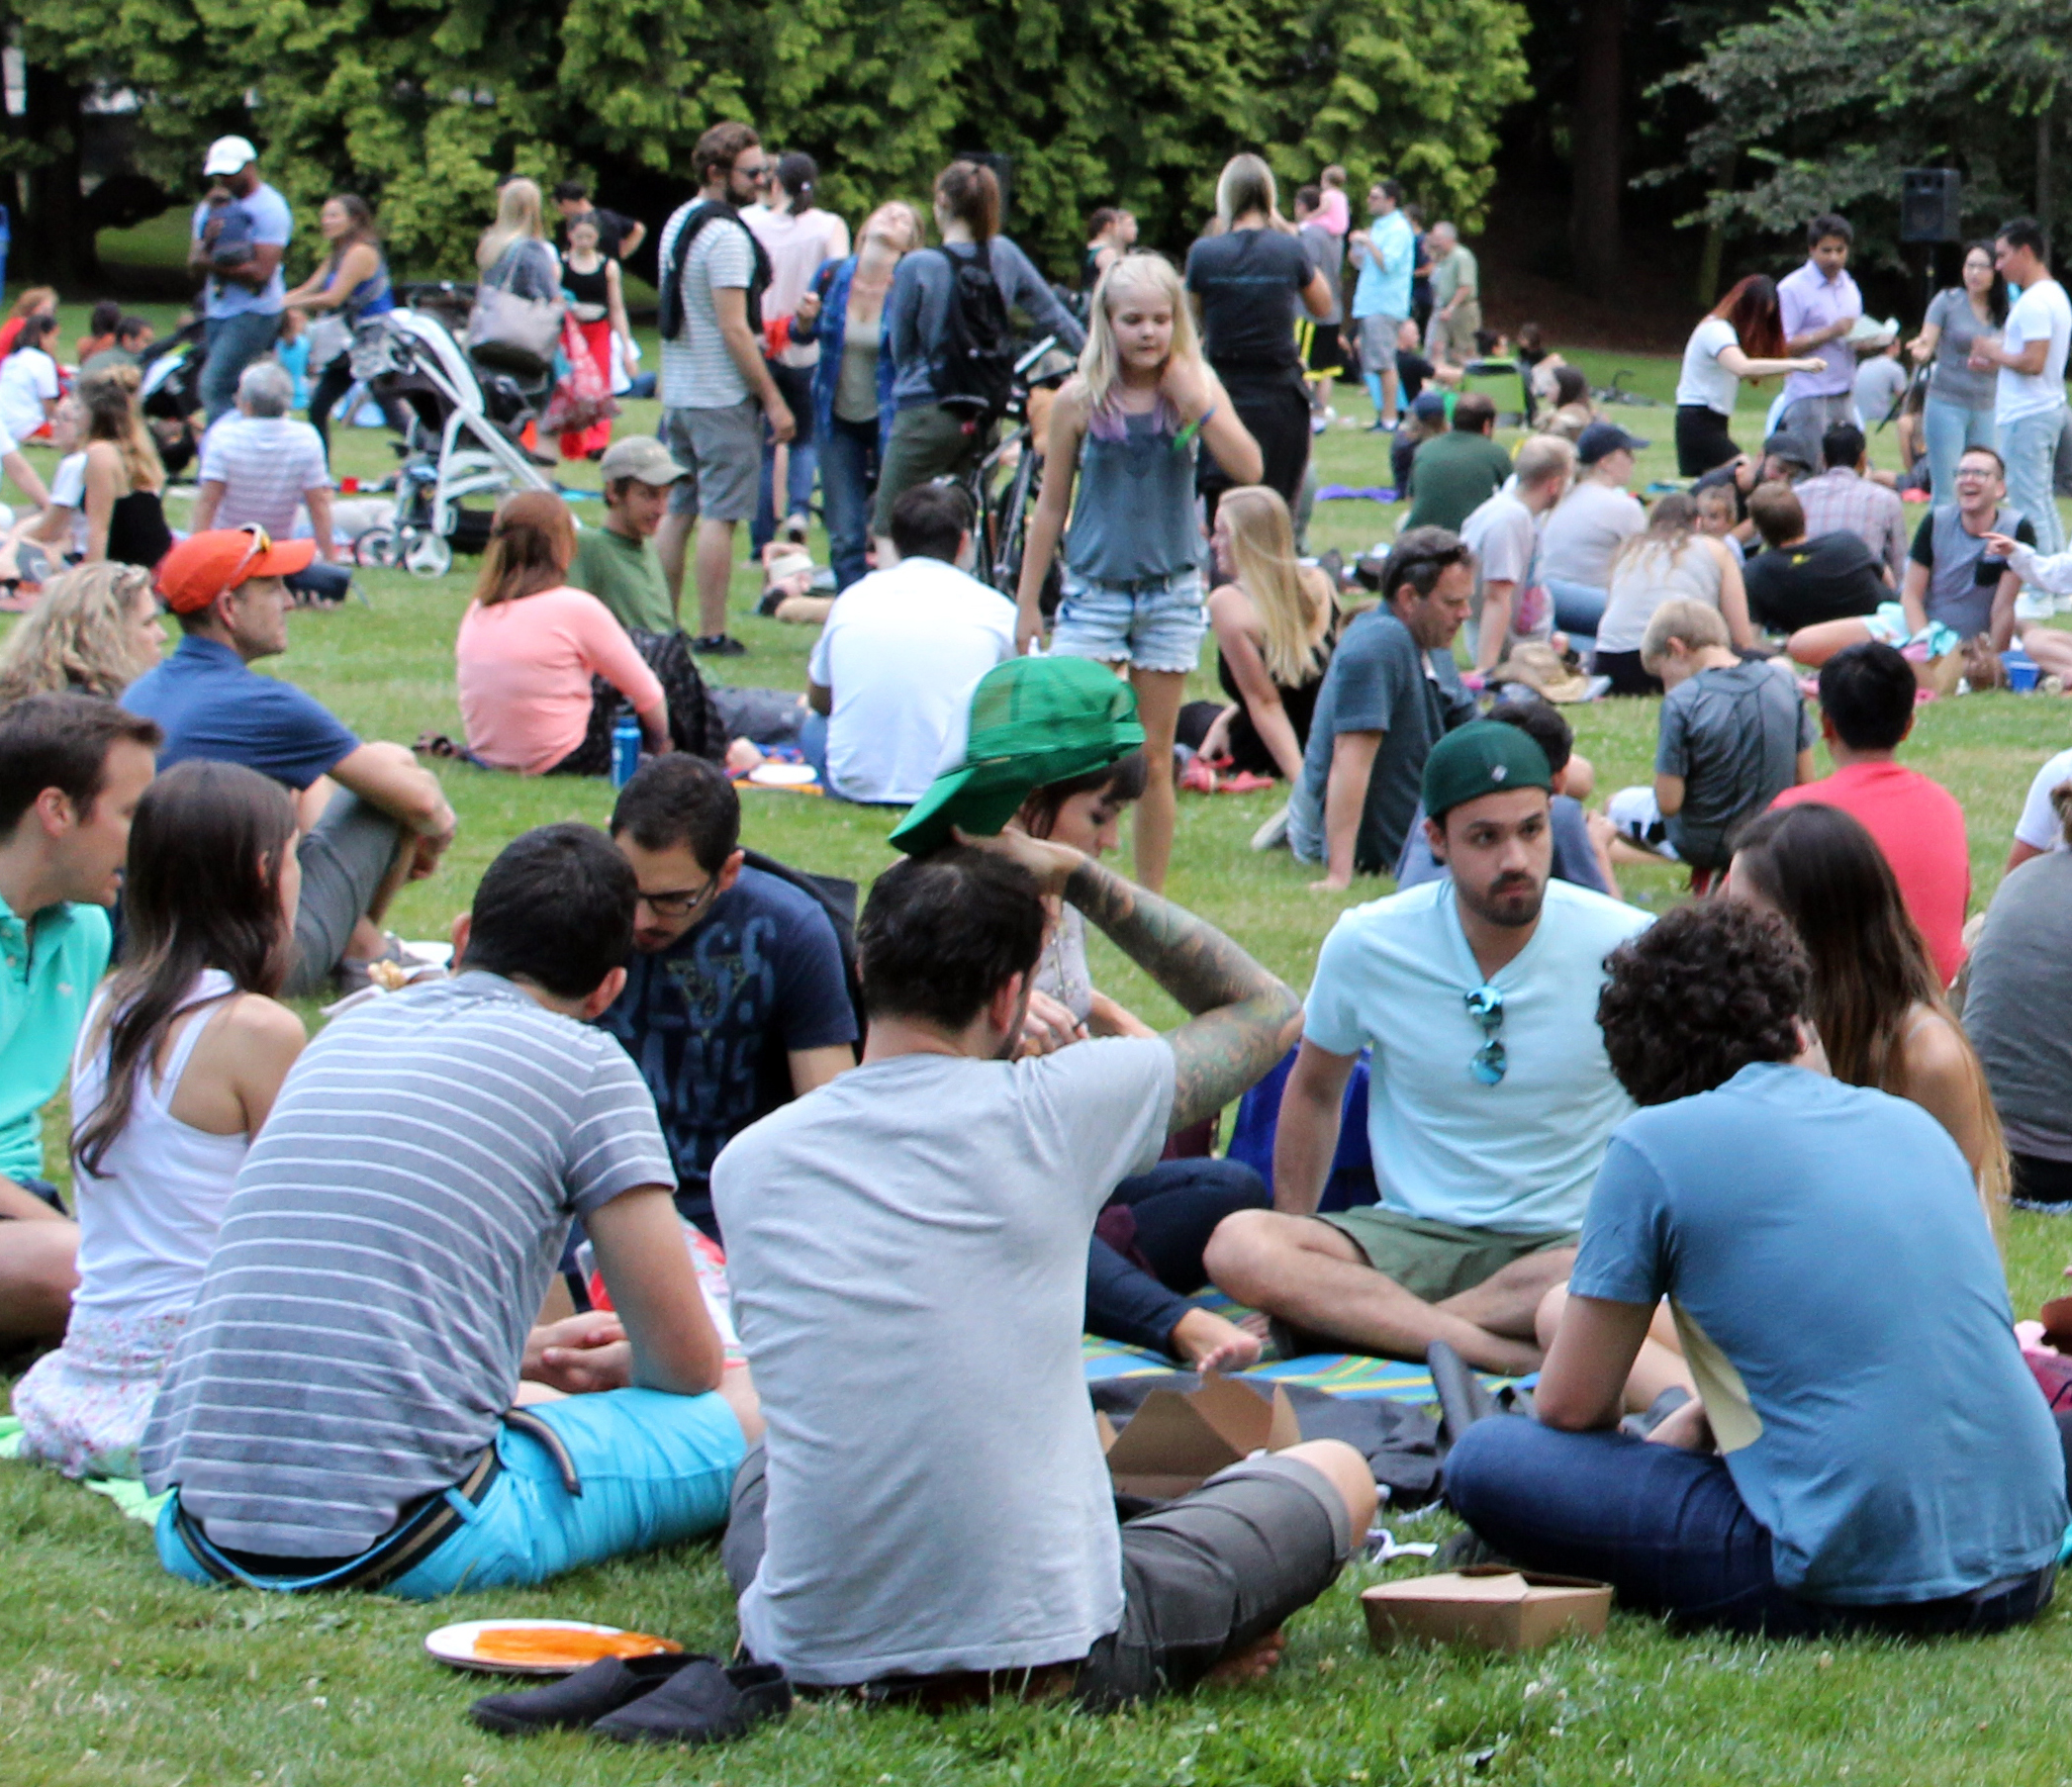 2016 Picnic in the Park